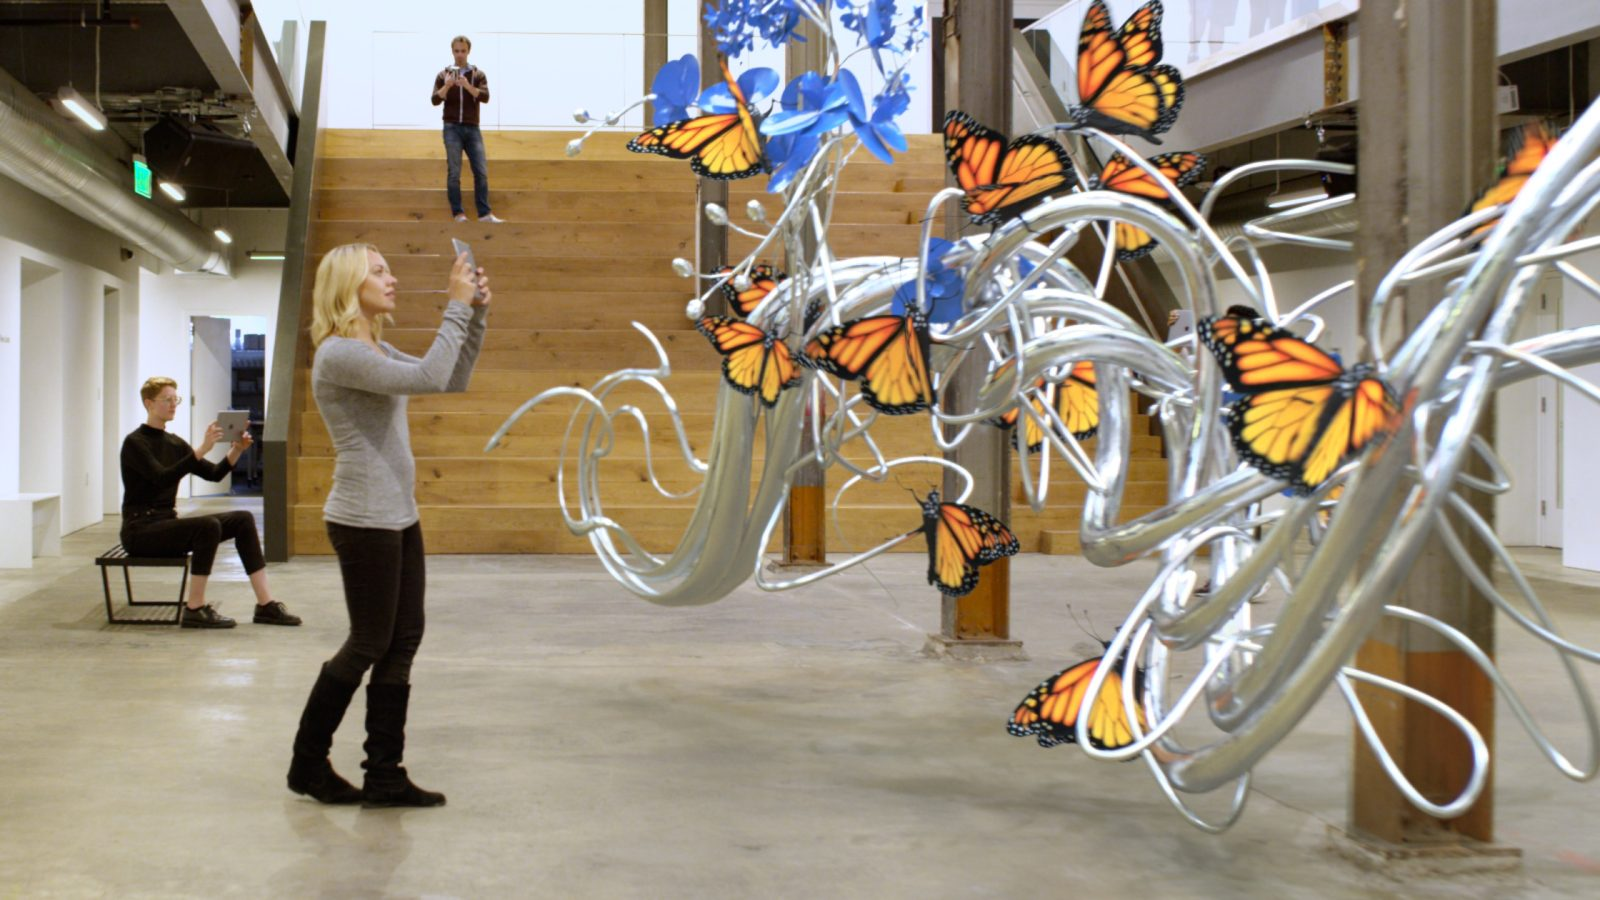 Adobe's Project Aero will let designers easily create AR content using existing Creative Cloud tools